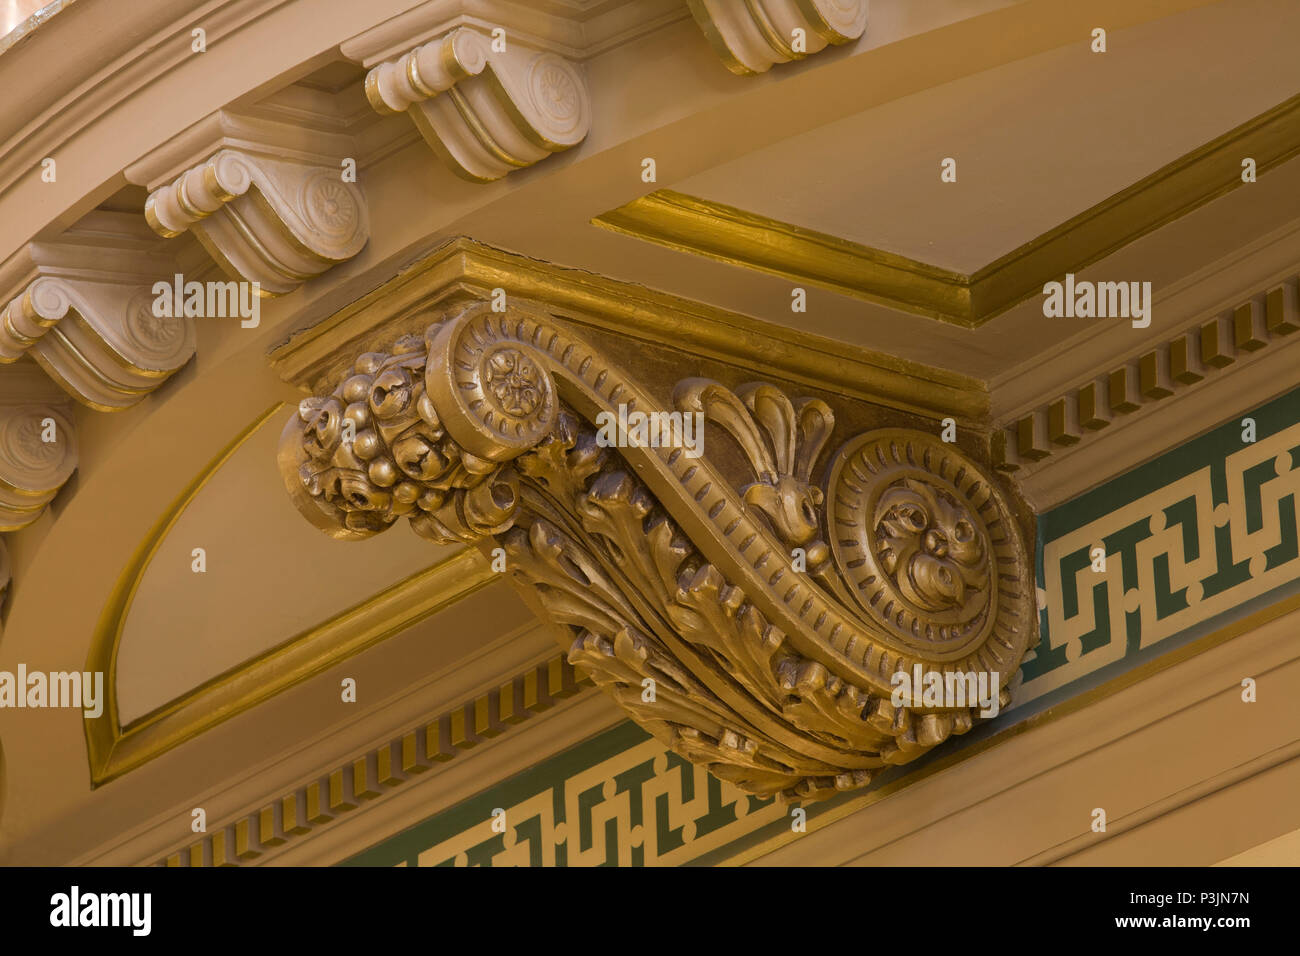 Close Up Of Classical Antique Gilded Ornamentation Along Upper Walls In The Rotunda Of Montana